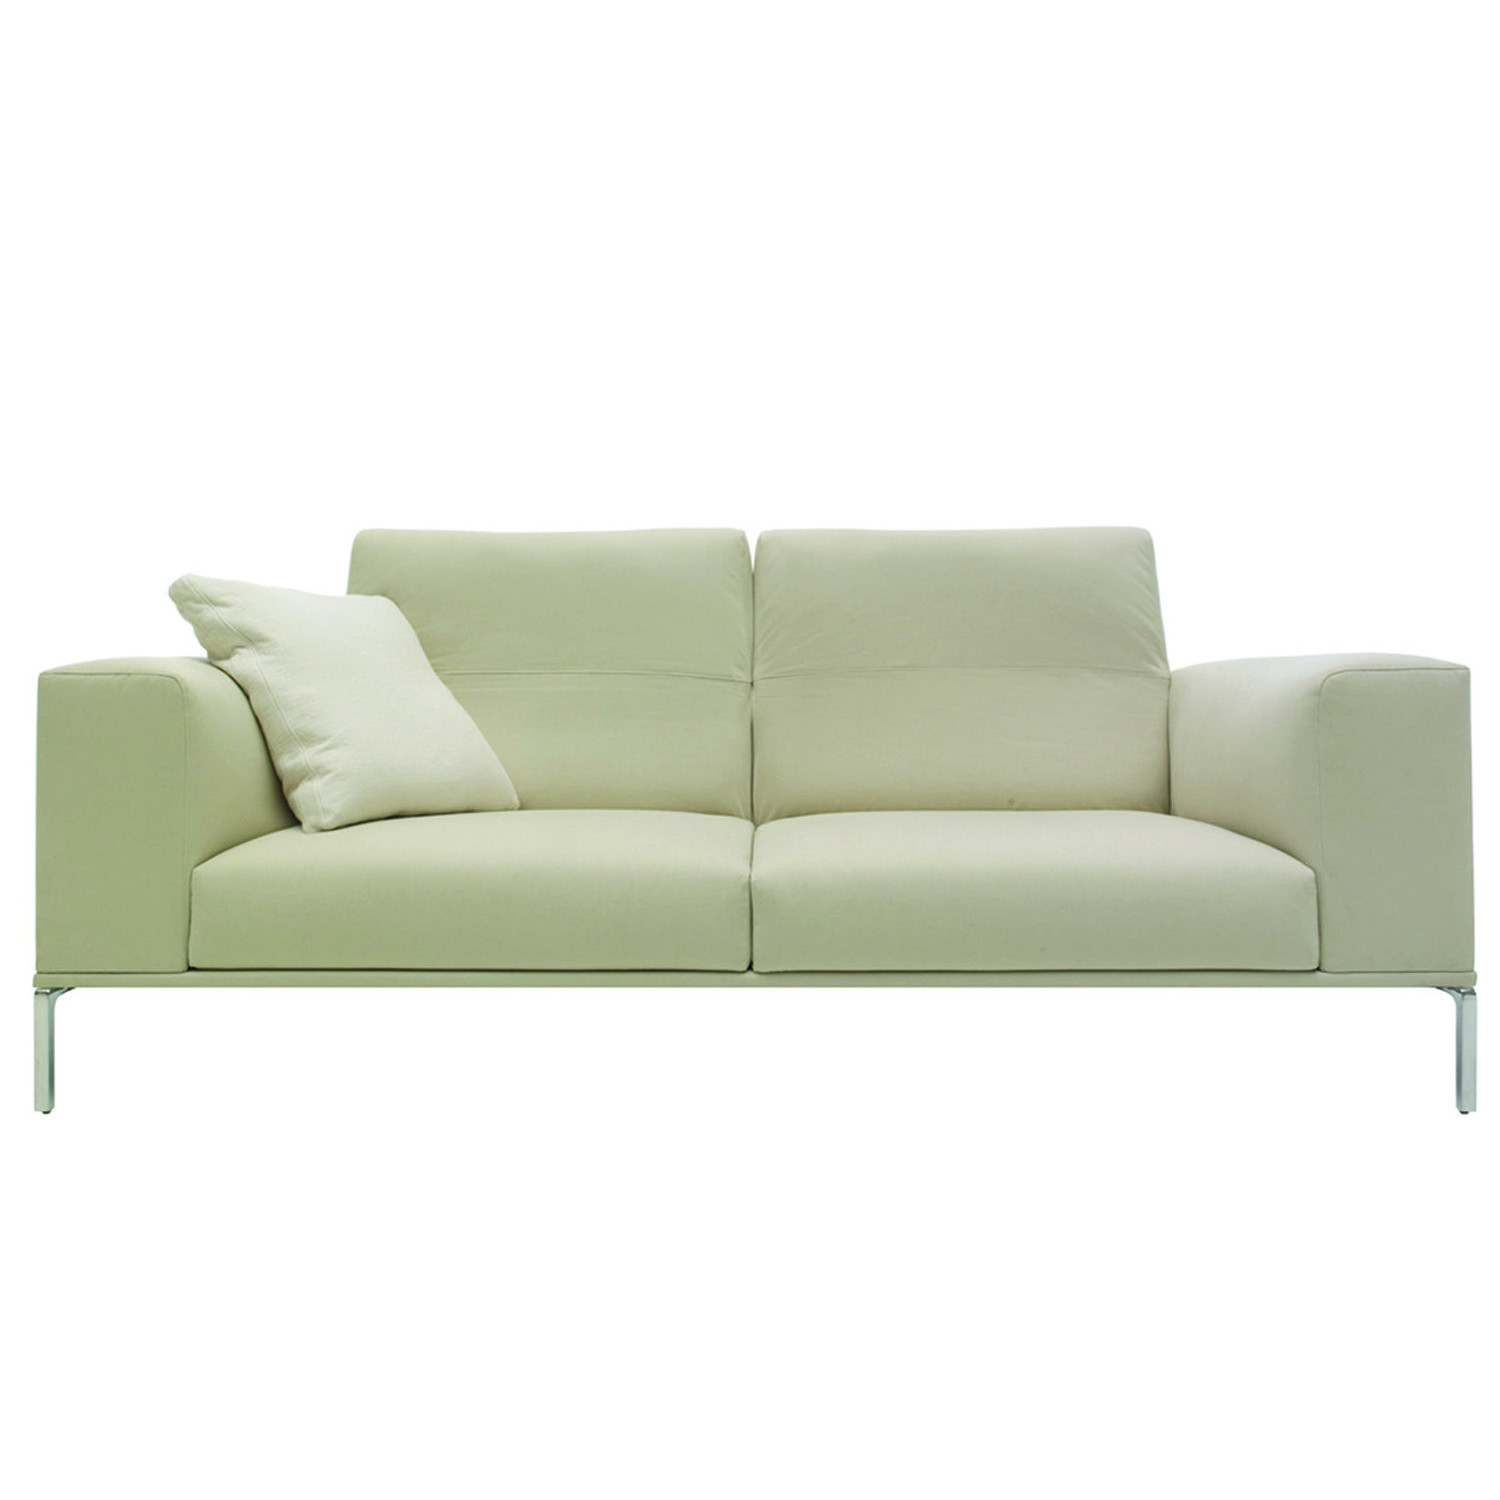 191 Moov Sofa 2 Seater